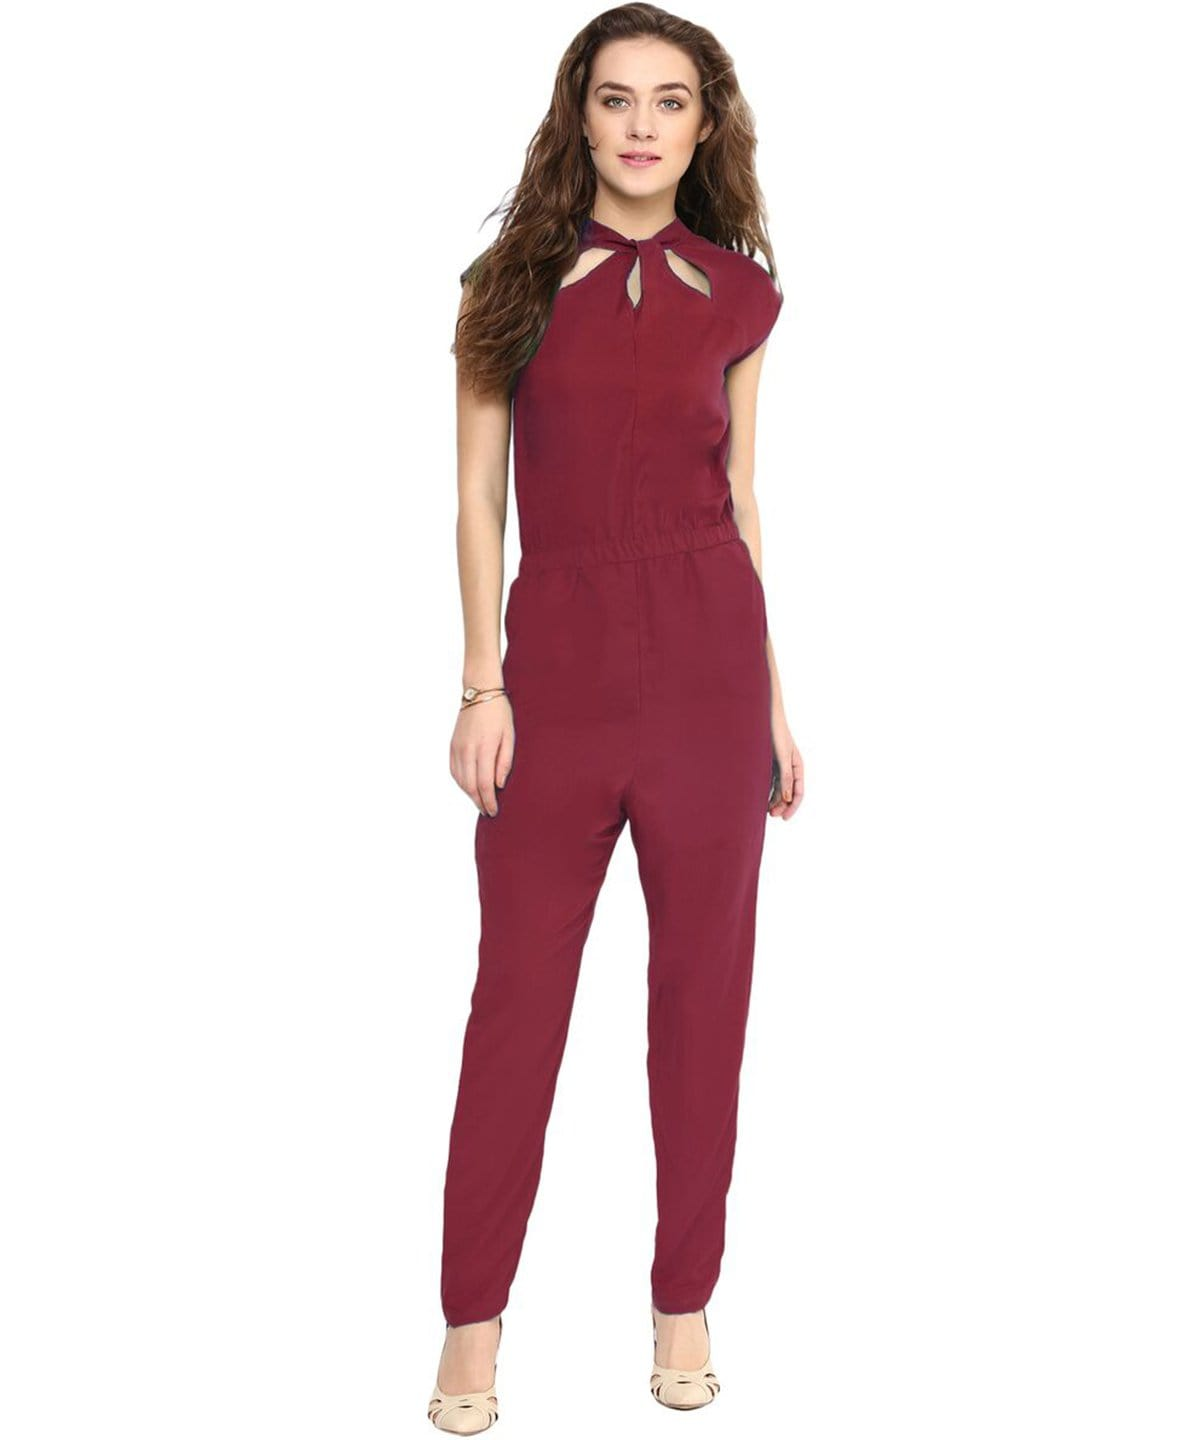 Maroon Neck Cut-out Jumpsuit. BUY 1 GET 3